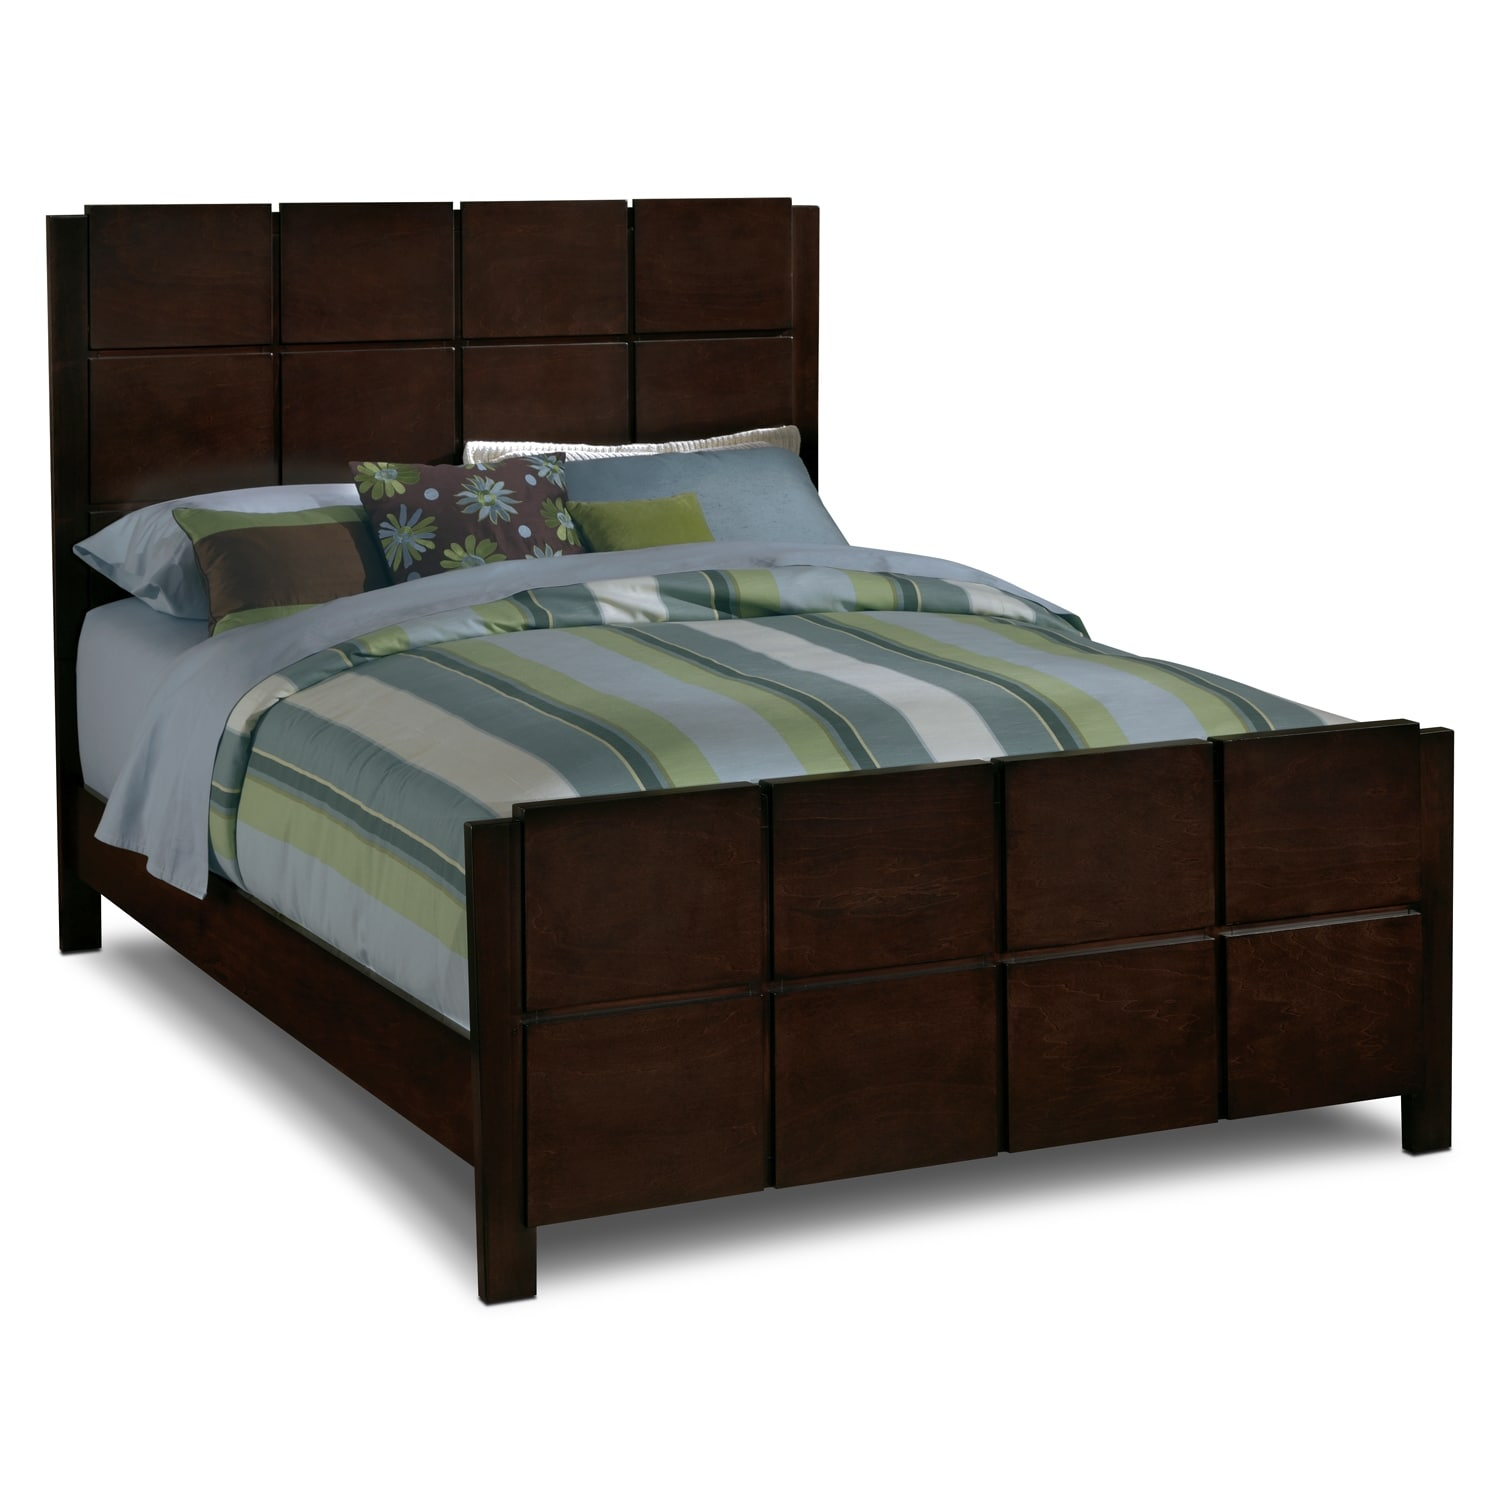 Bedroom Furniture - Mosaic Bed - Dark Brown